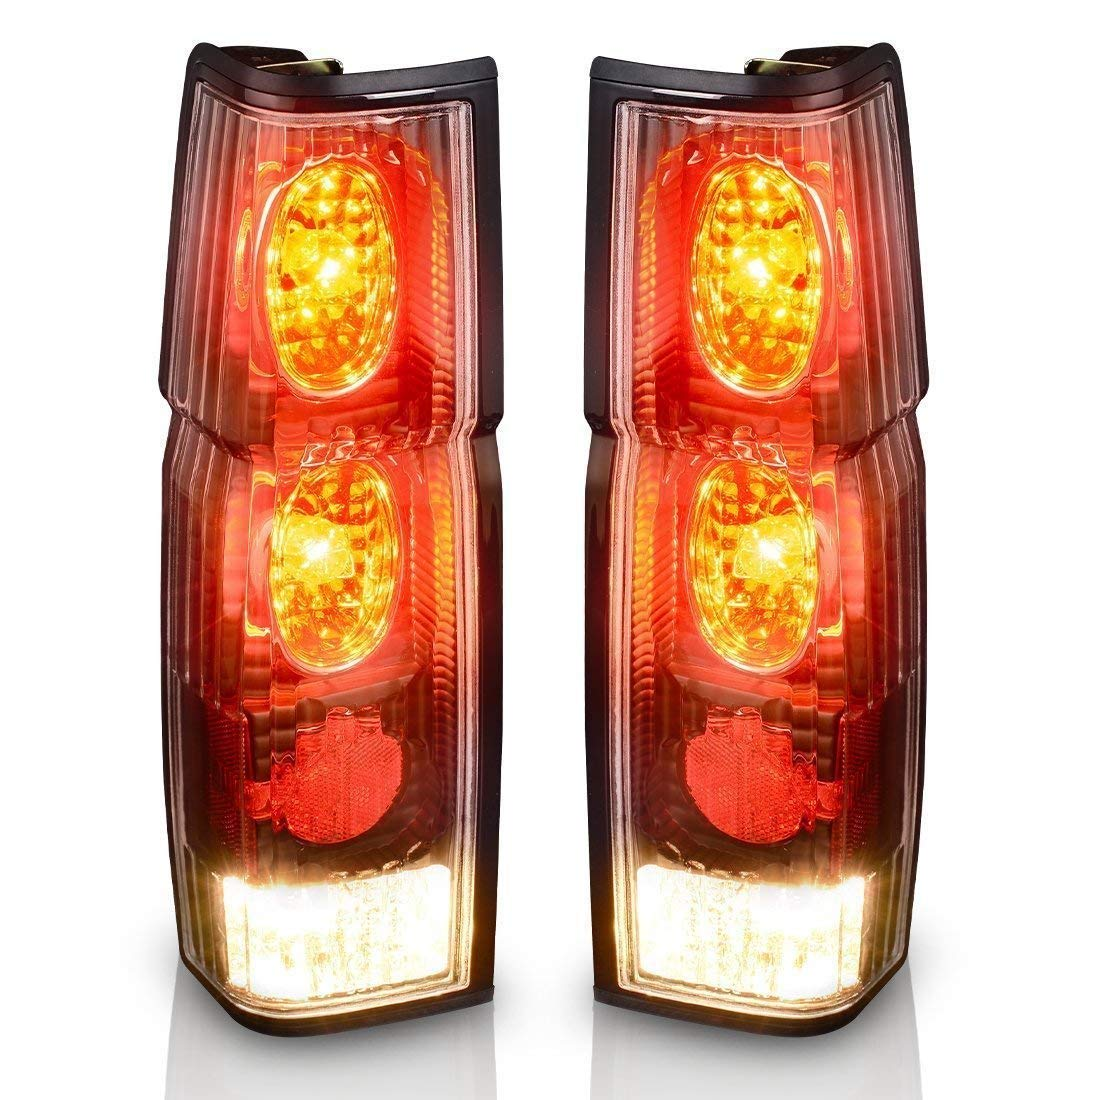 Taillights Tail Lamps For Nissan Hardbody D21 1986-1994 Hardbody Pickup 1995 1996 1997 (Black Clear Assembly Replacement D21 & Pickup Models Only)